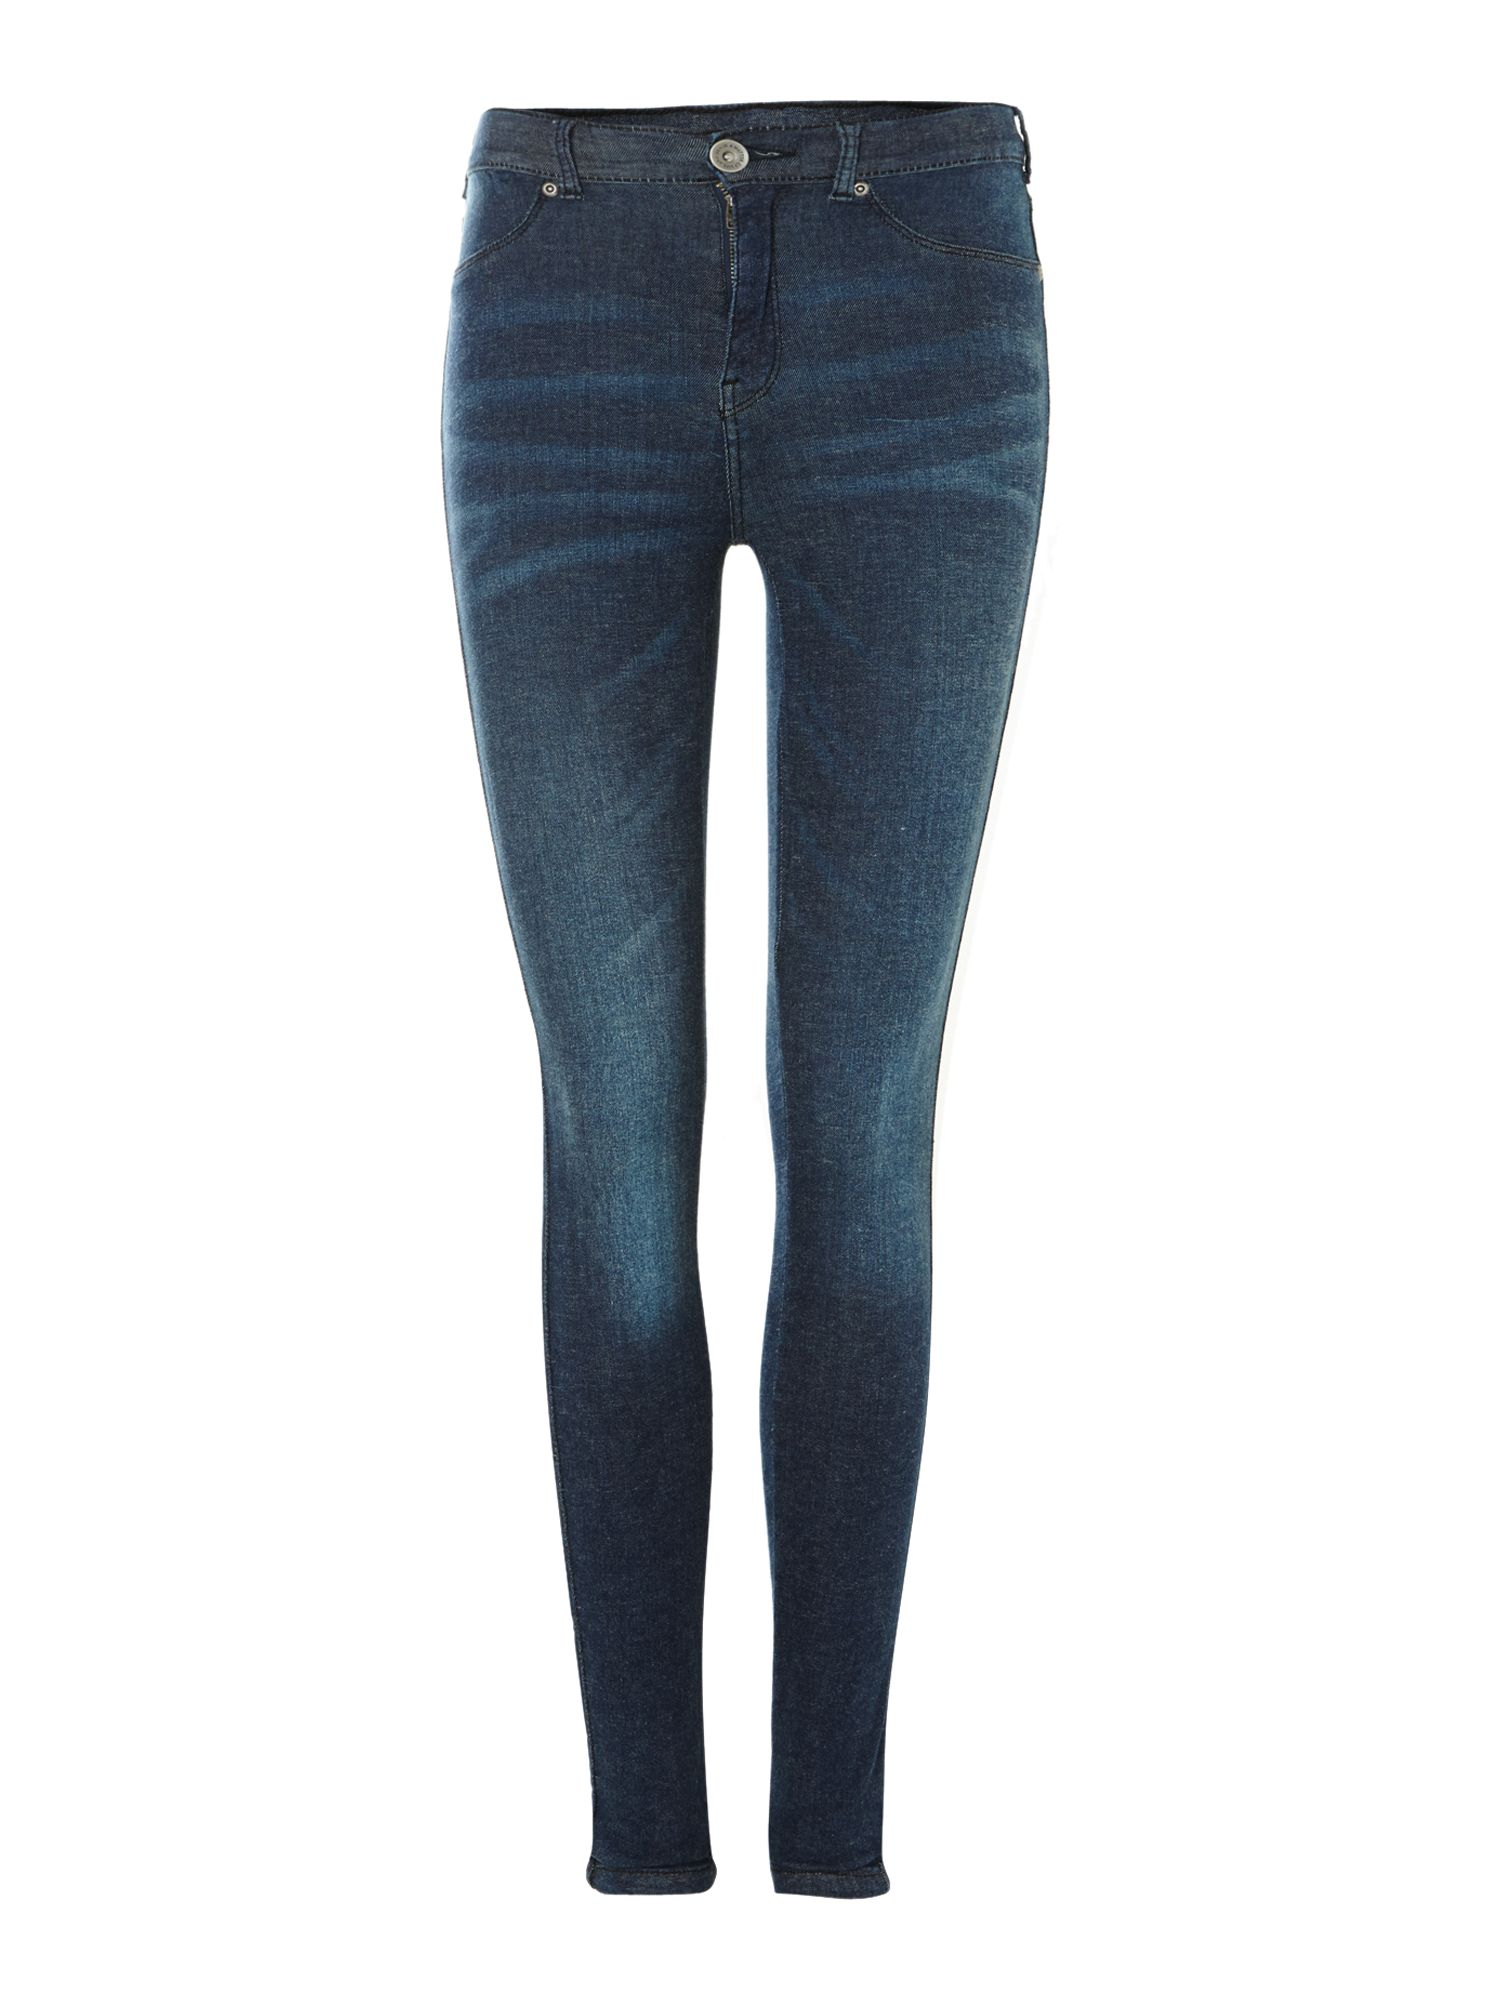 Plenty high-rise skinny jeans in Dark Wash